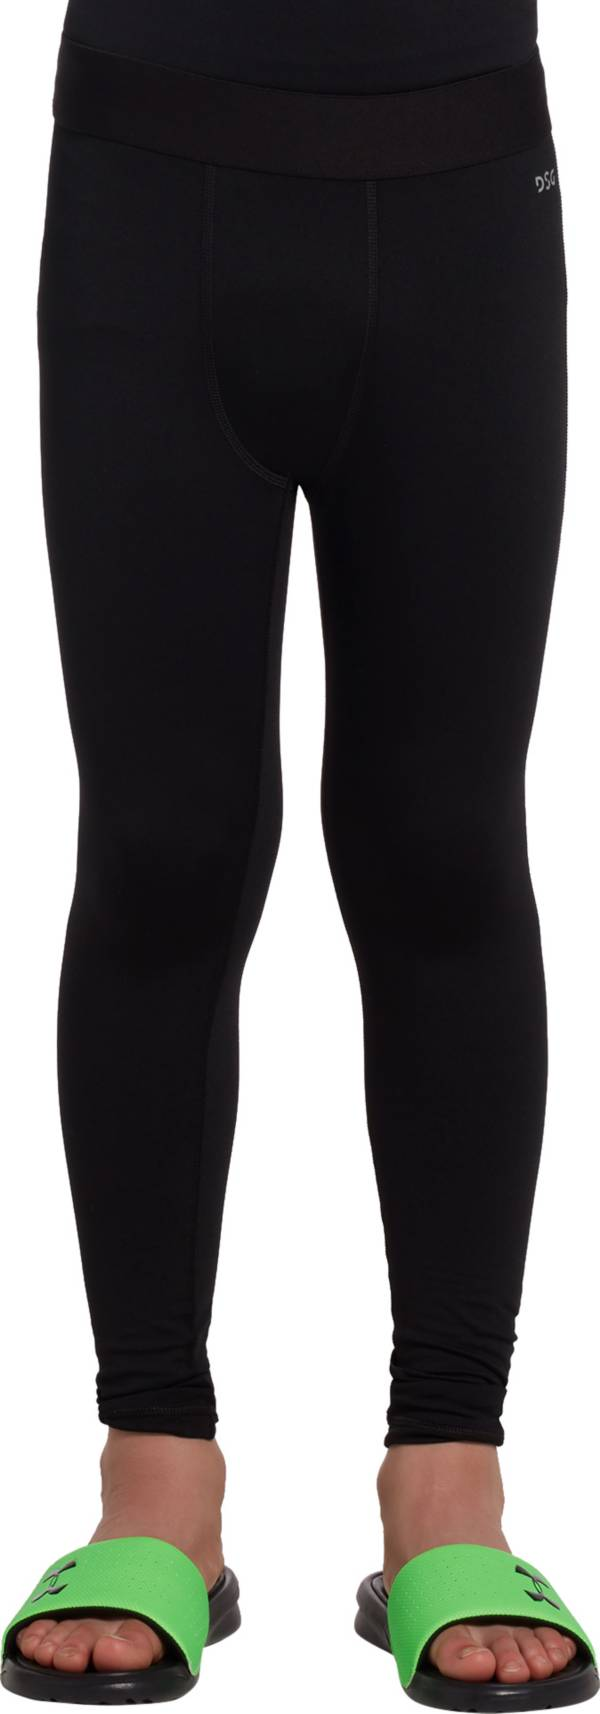 DSG Boys' Cold Weather Compression Tights product image